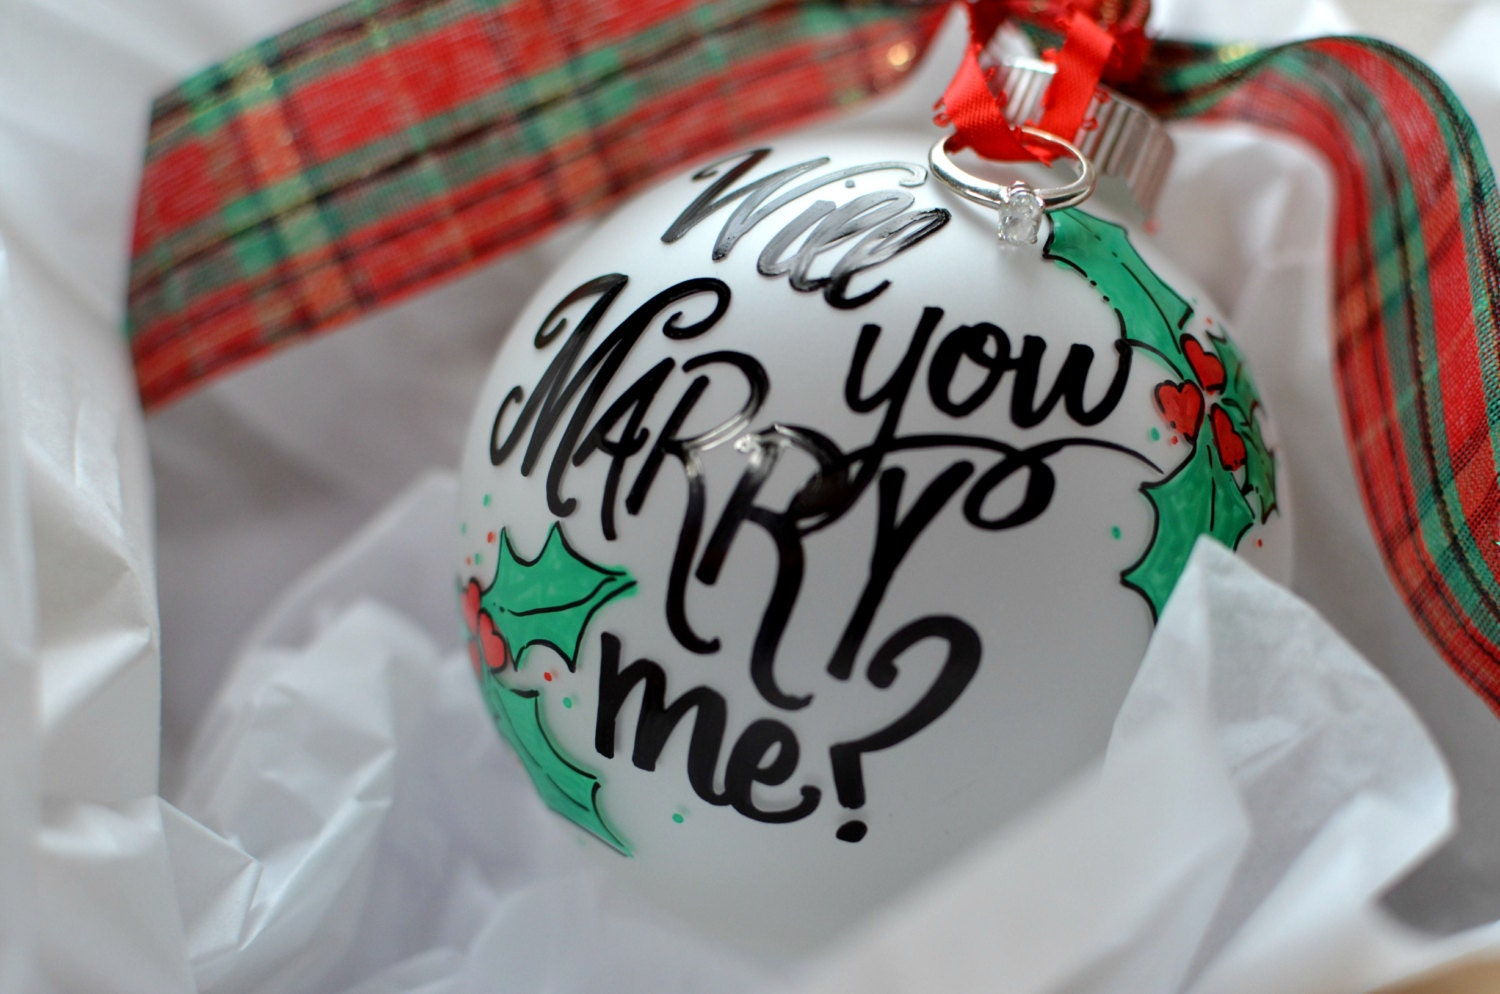 Will you marry me christmas ornament -  Zoom